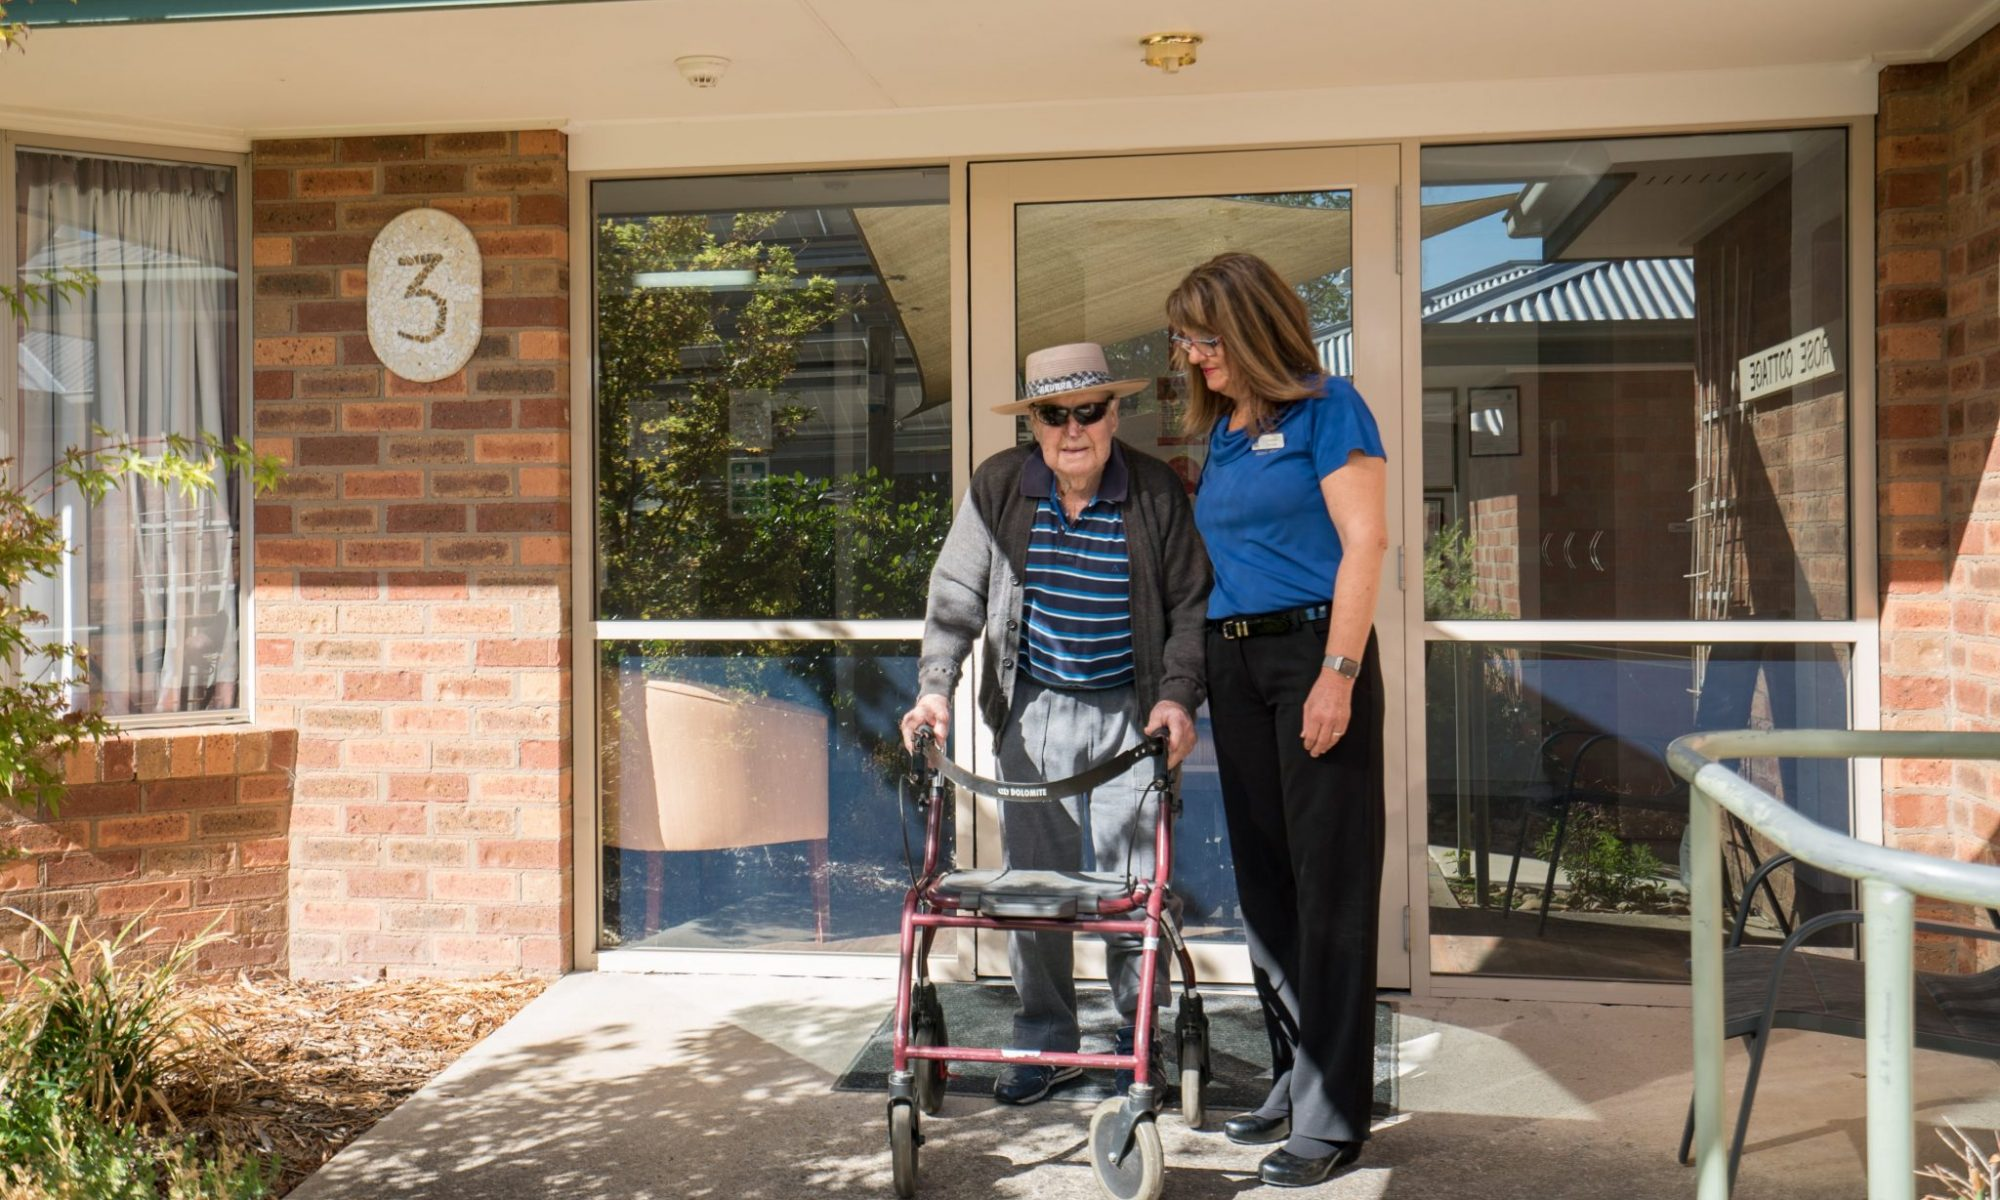 Holbrook Hostel - Aged care including dementia - Holbrrok-00132